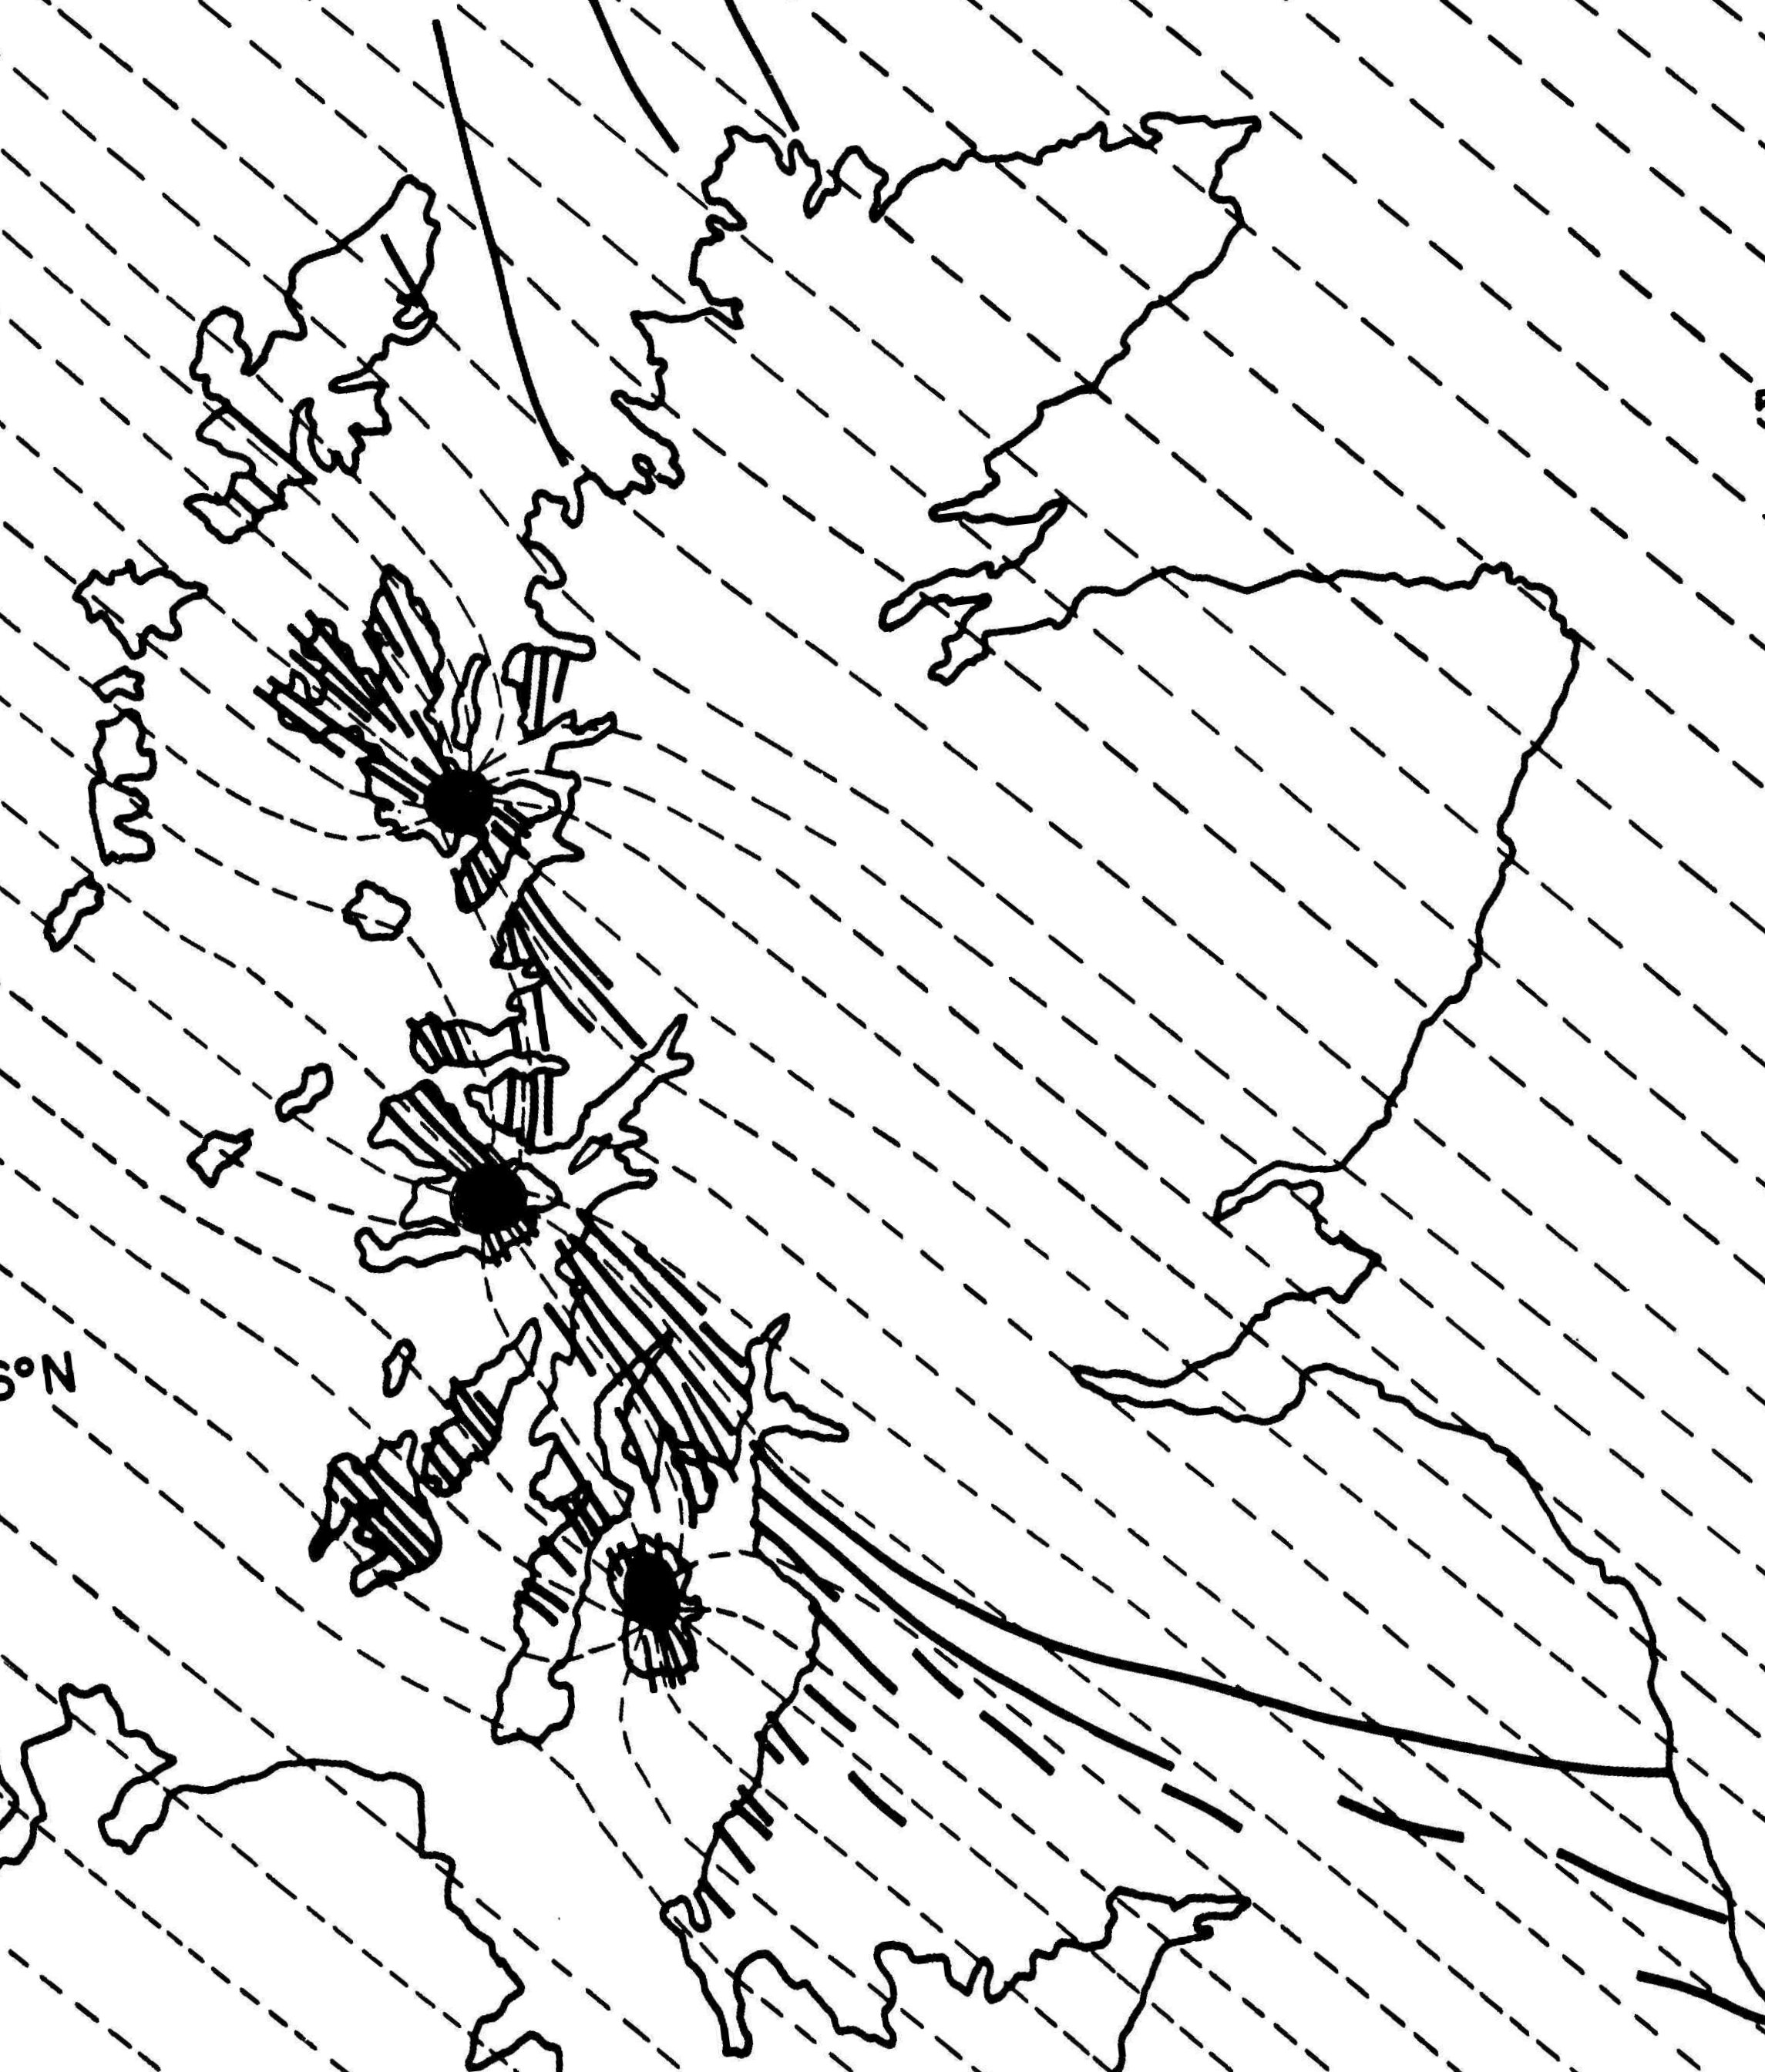 vann 1978 tertiary dyke stress map crop rotated